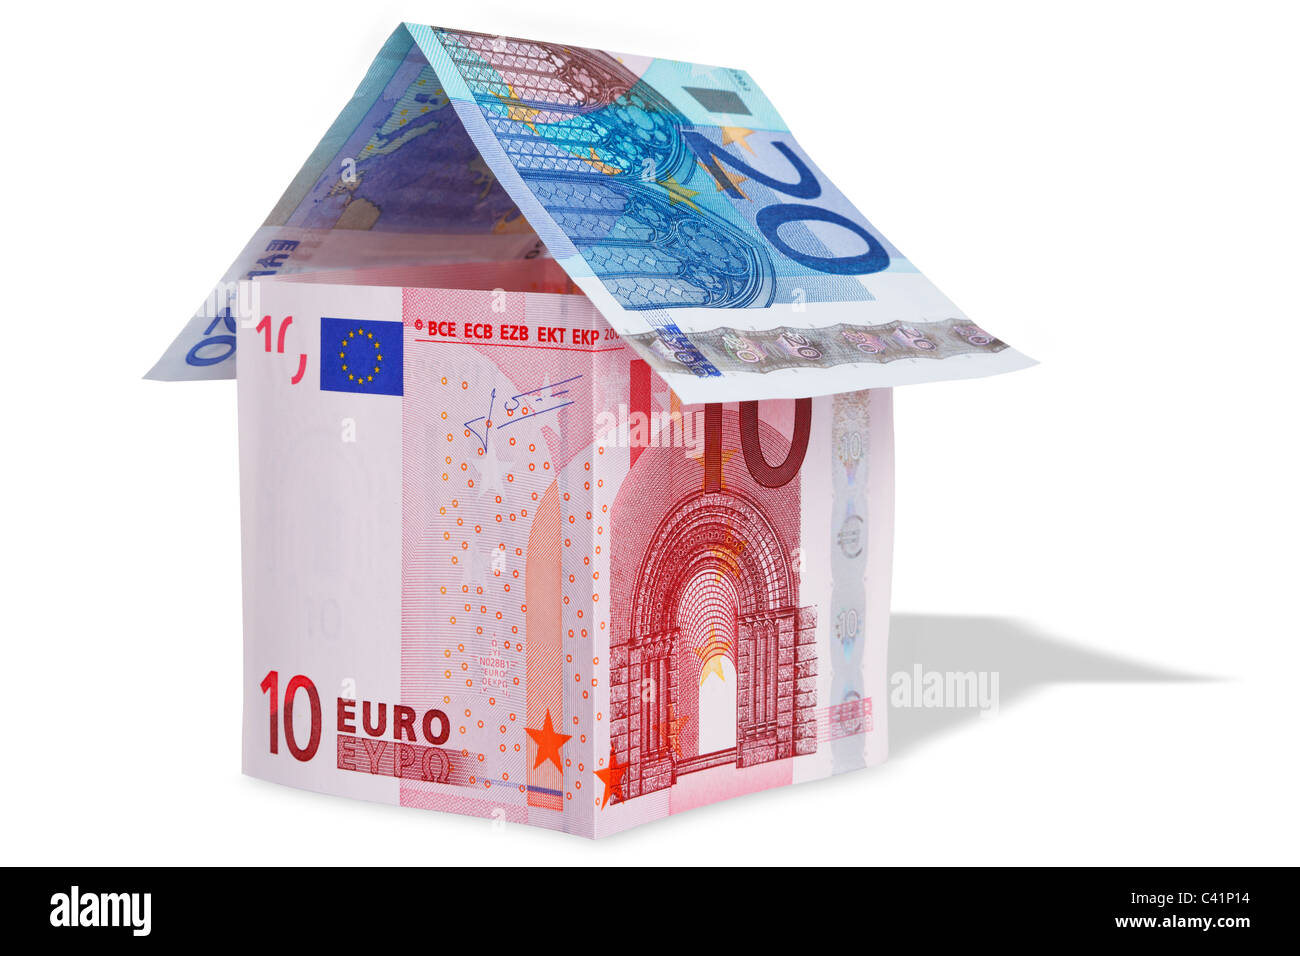 Photo of a model house made from Euro banknotes - Stock Image